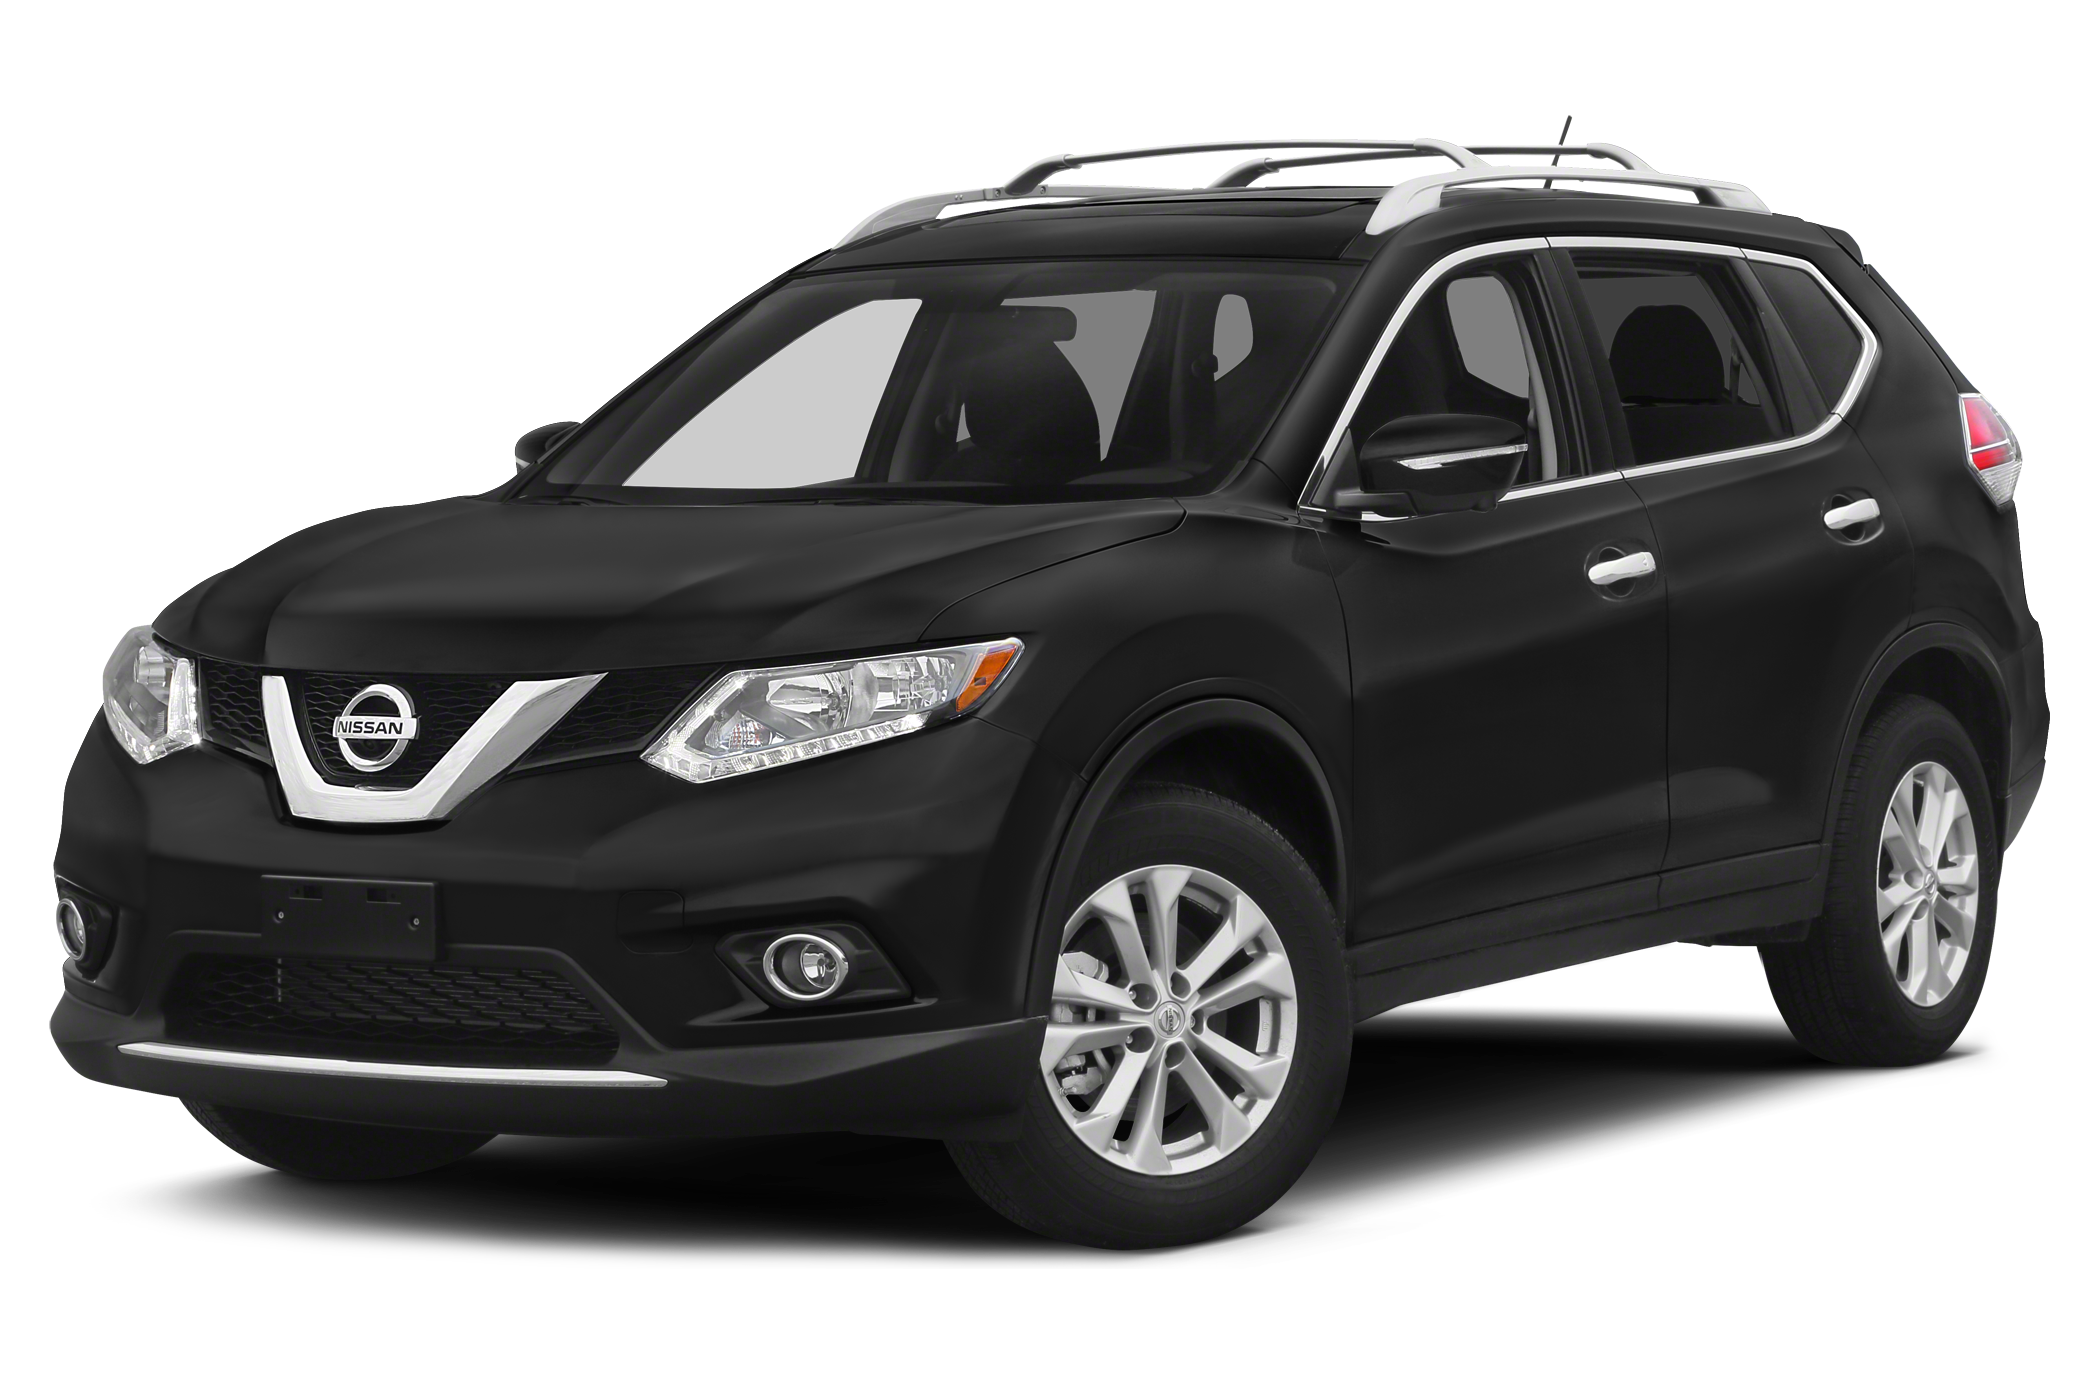 Available in 8 styles: 2015 Nissan Rogue 4dr AWD shown